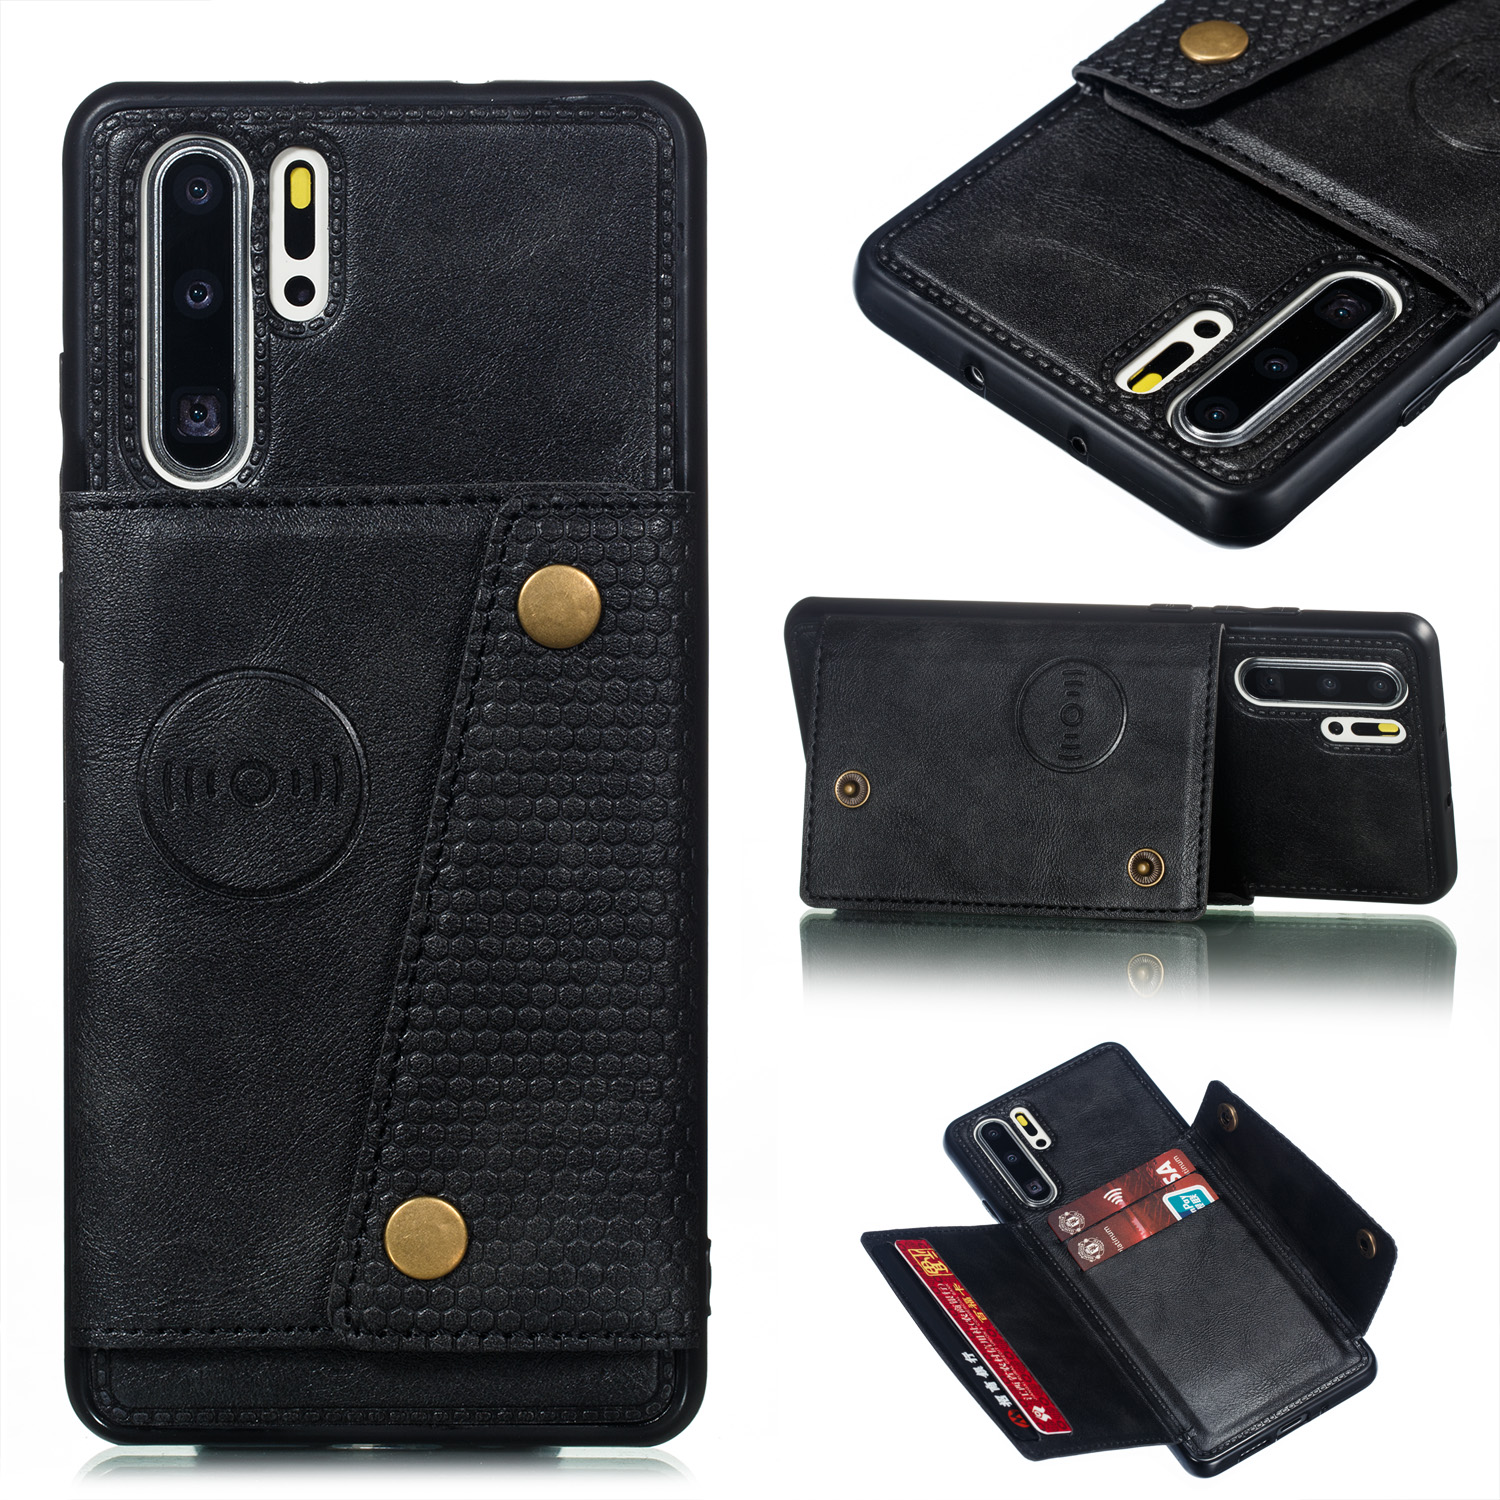 For Huawei P30 pro Double Buckle Non-slip Shockproof Cell Phone Case with Card Slot Bracket black